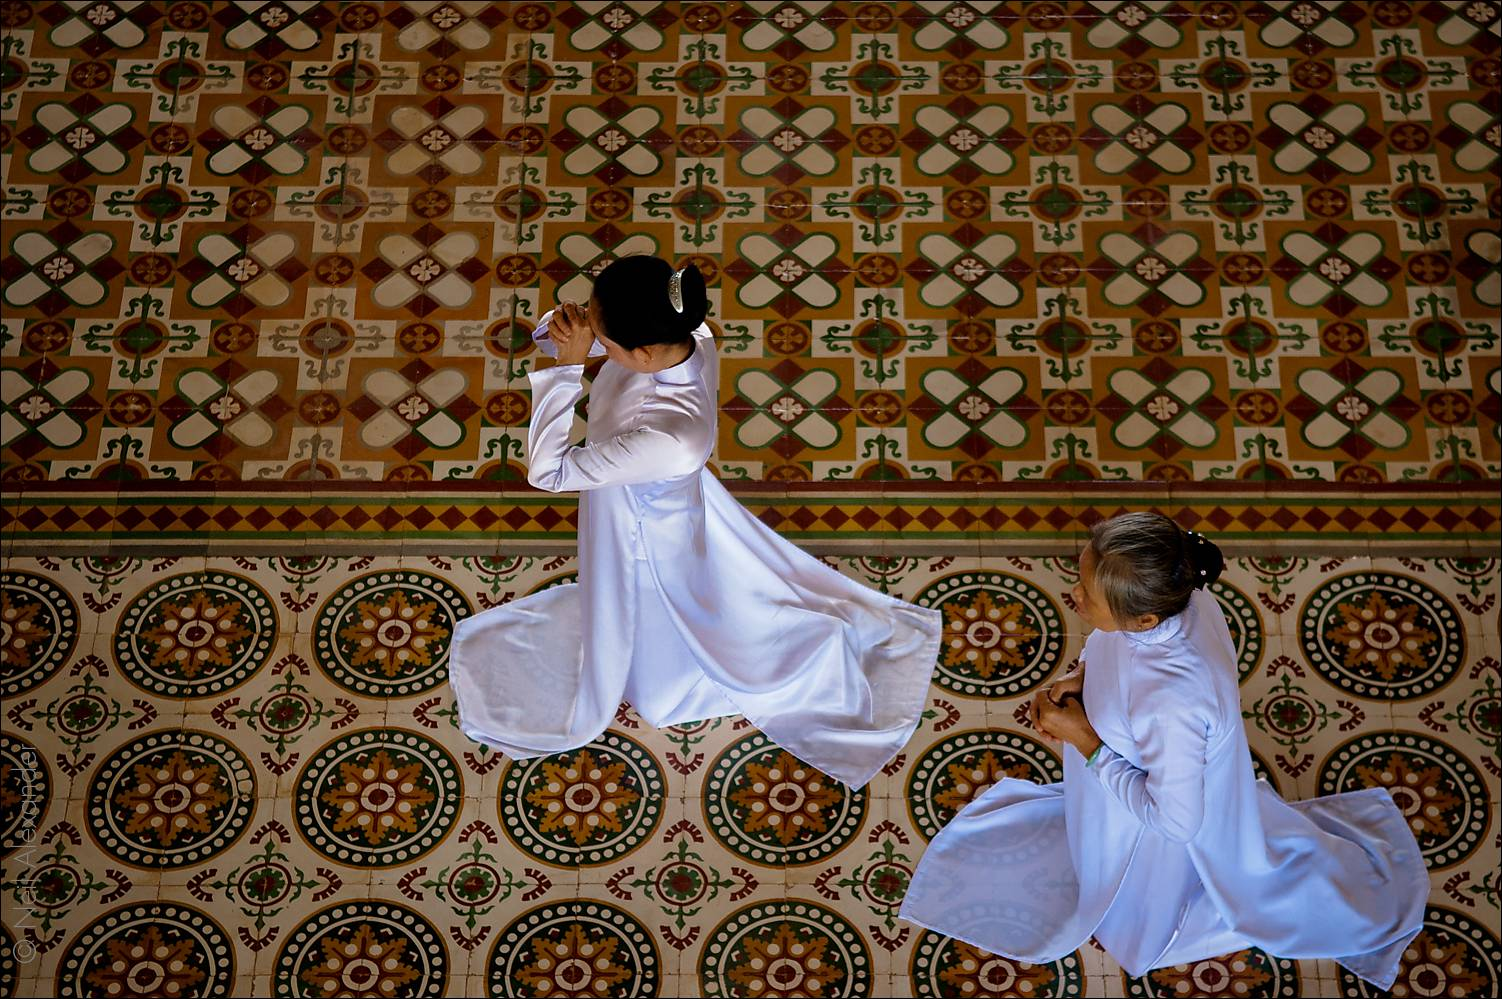 Women worshippers at the Tay Ninh Holy See, Vietnam